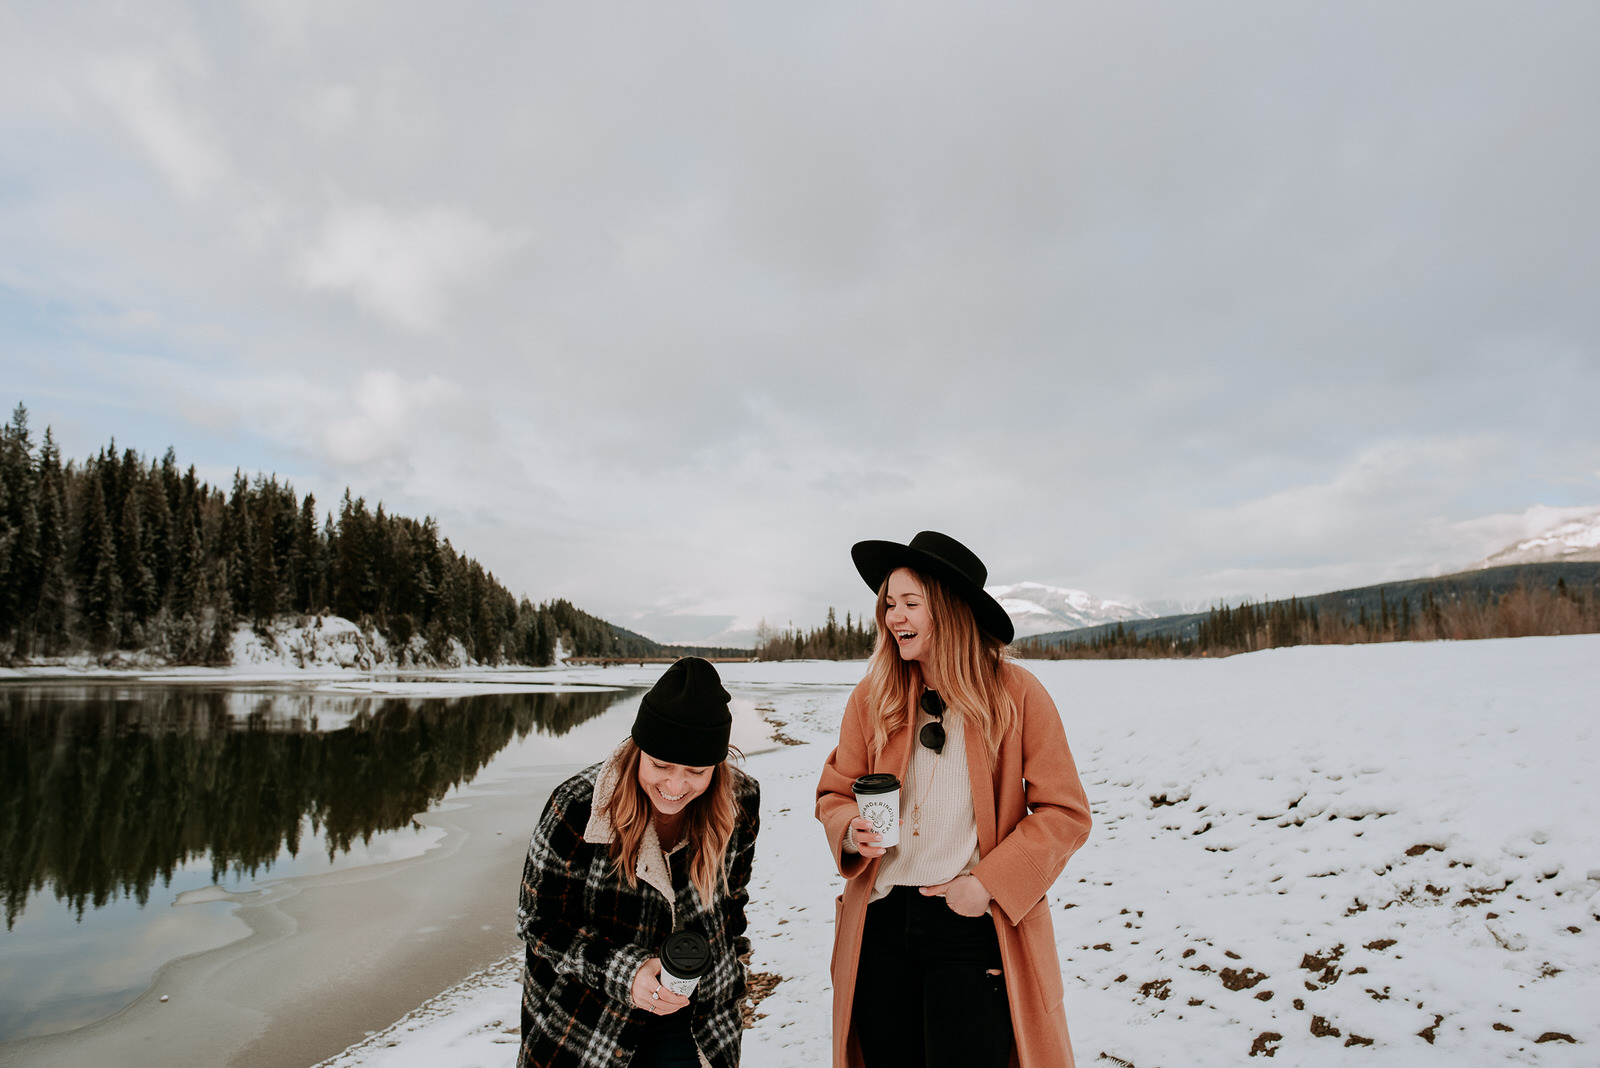 Two women enjoying caffeine free drinks outside by a river during the winter